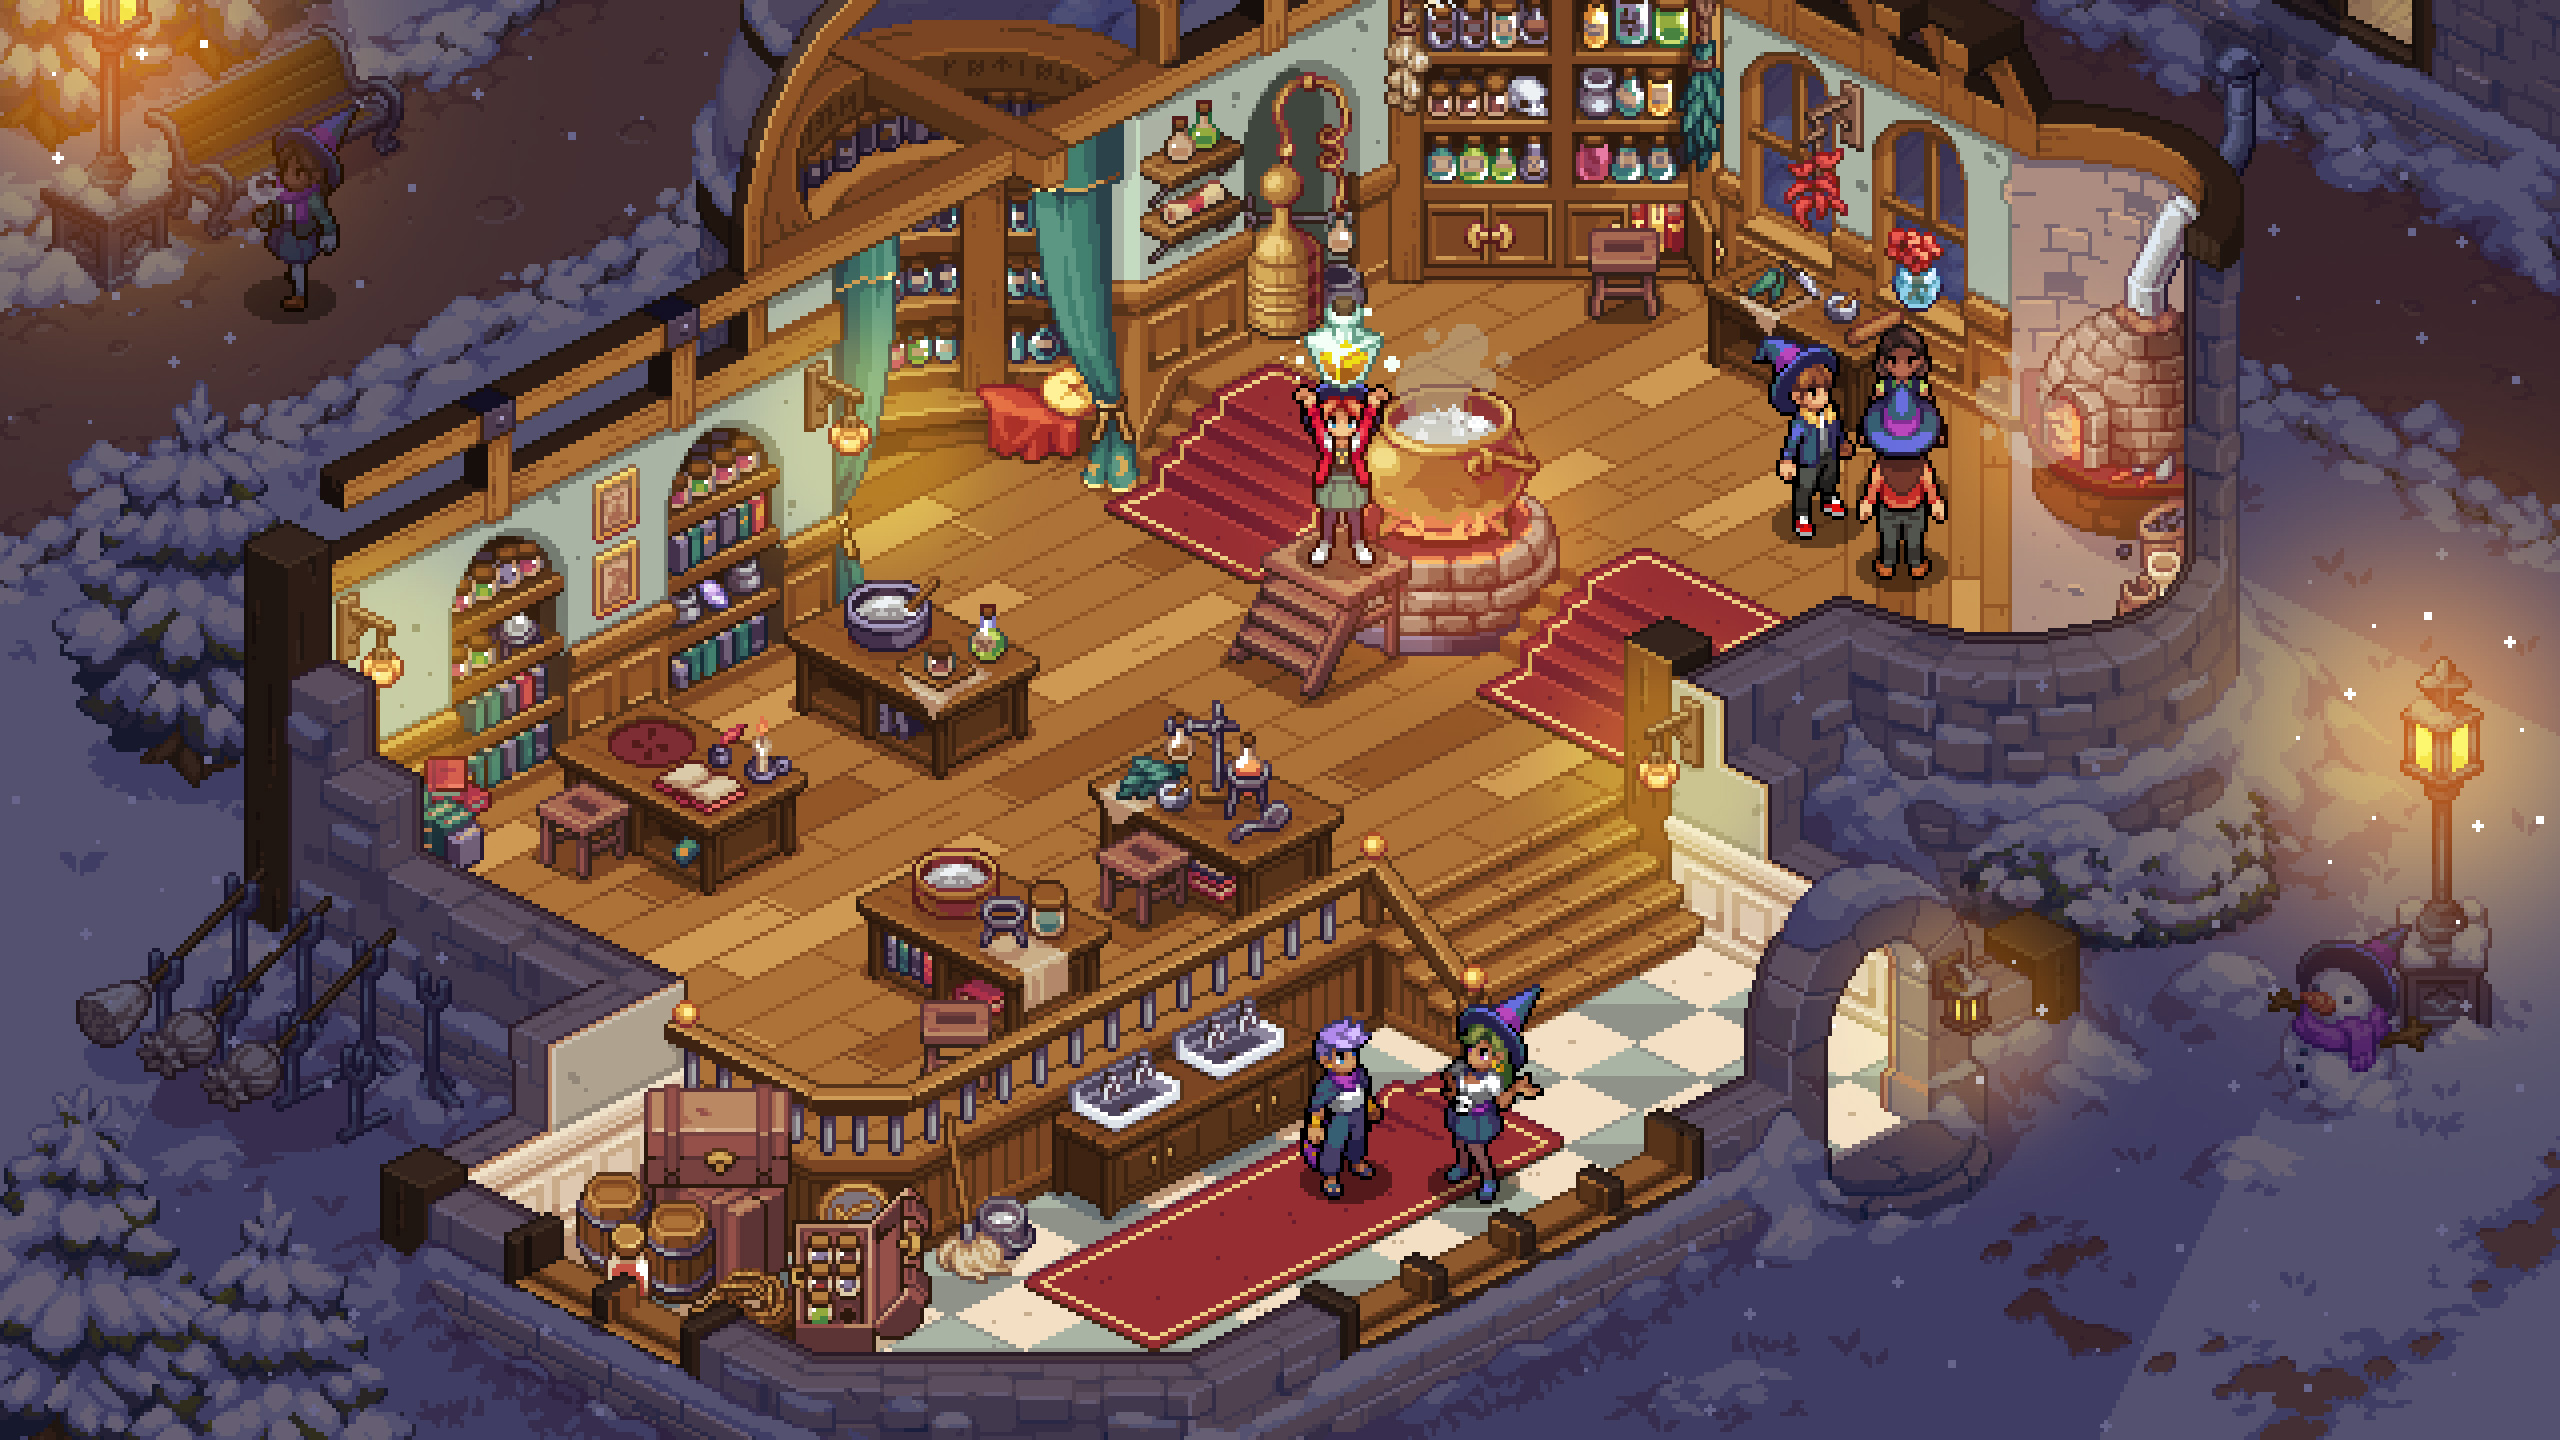 Chucklefish S Magical School Game Witchbrook Has A New Art Style